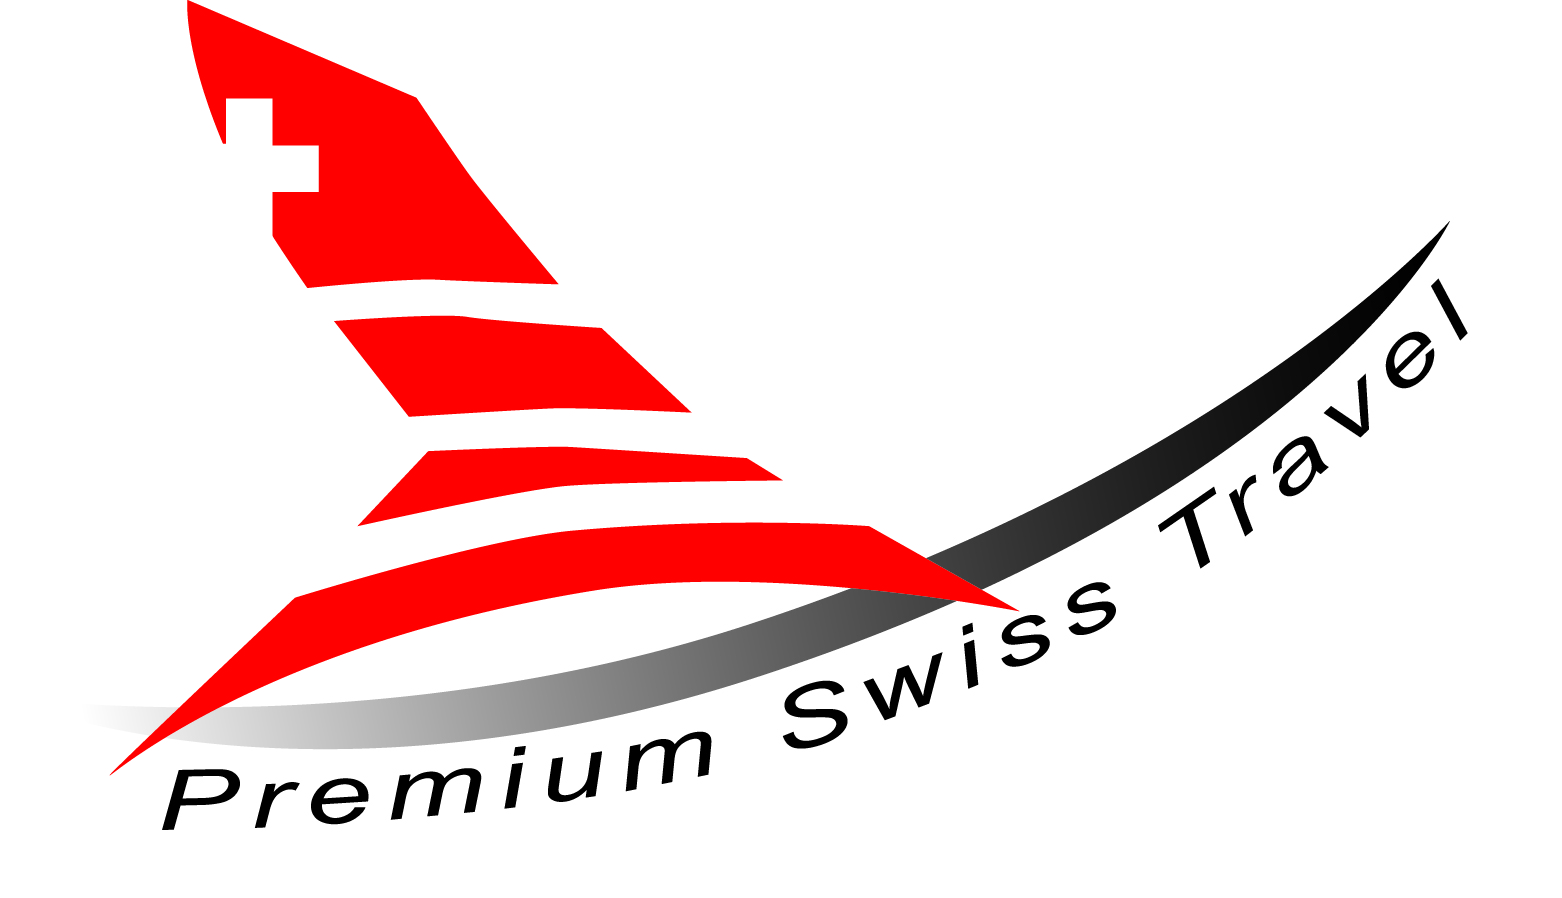 Premium Swiss Travel |   Cruise tags  7+ days